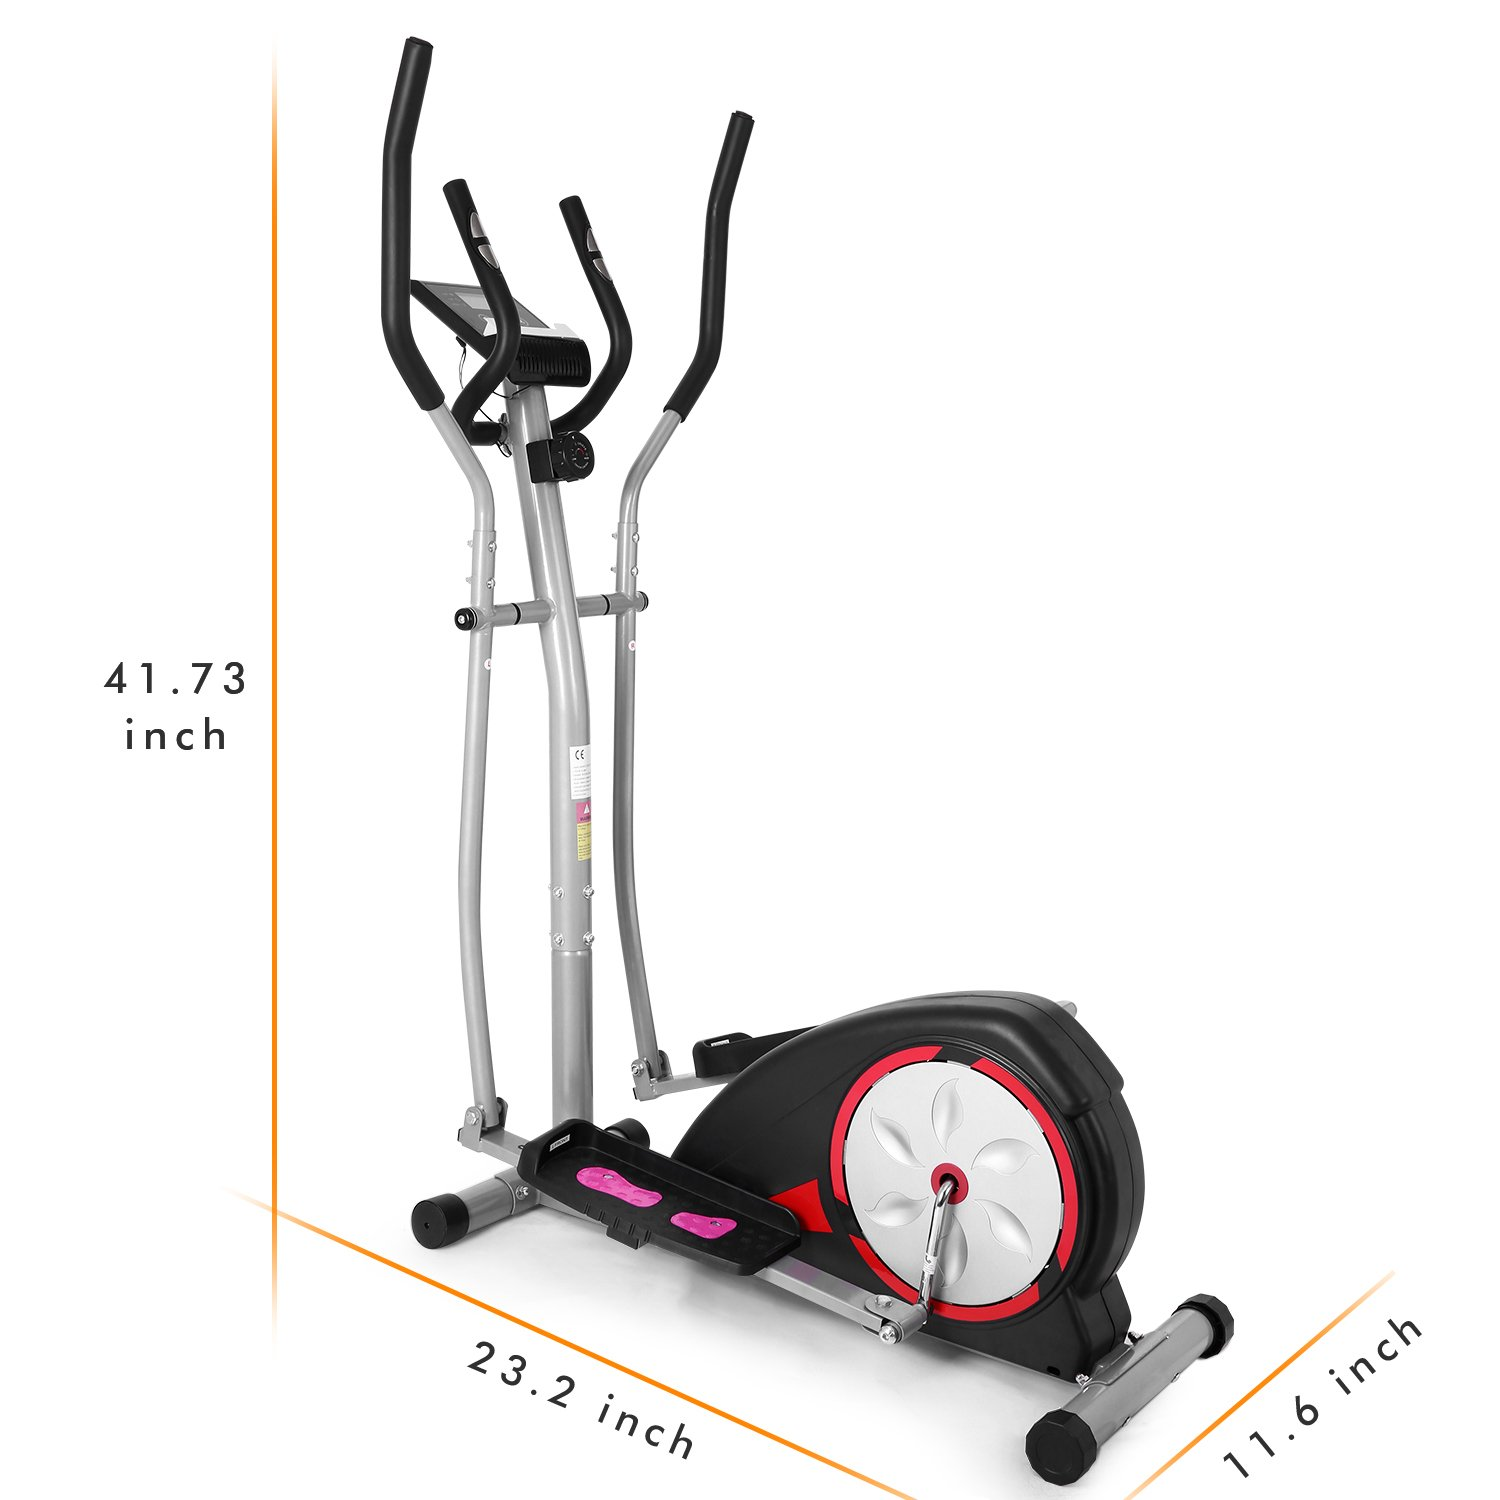 ANCHEER Elliptical Machine Trainer Magnetic Smooth Quiet Driven with LCD Monitor and Pulse Rate Grips (Silver) by ANCHEER (Image #6)